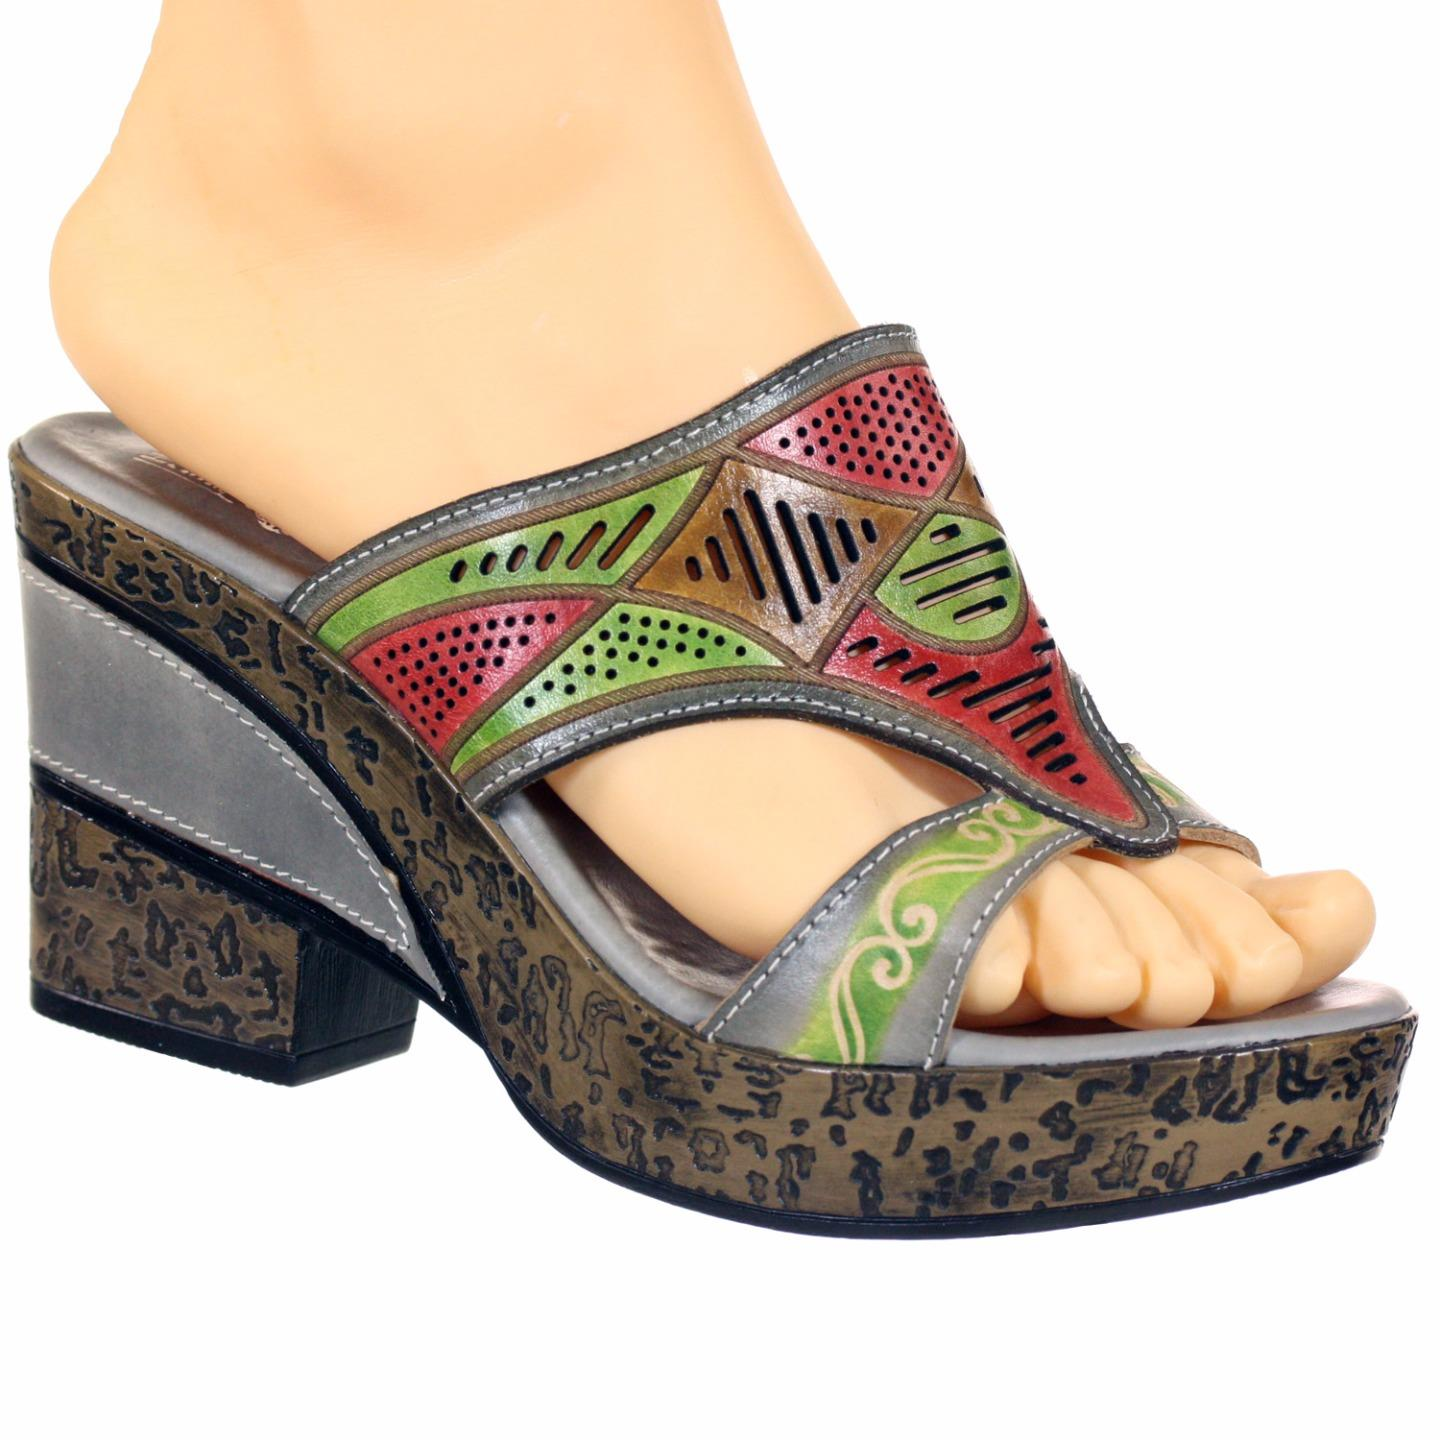 Binella L'Artiste Collection By Spring Step Women's Sandal Grey Multi EU 37 US 7 by Spring Step